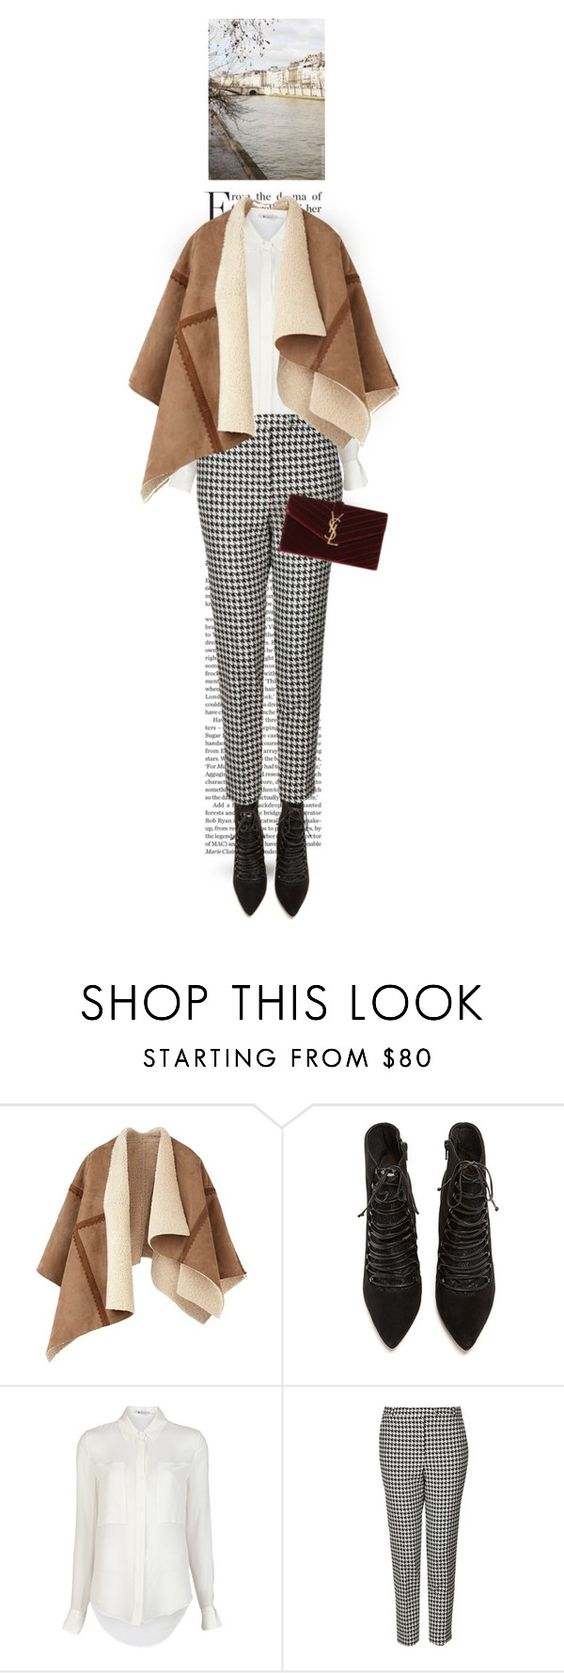 """""""175."""" by auroram ❤ liked on Polyvore featuring Burberry, Lucy Choi London, T By Alexander Wang, Topshop and Yves Saint Laurent"""